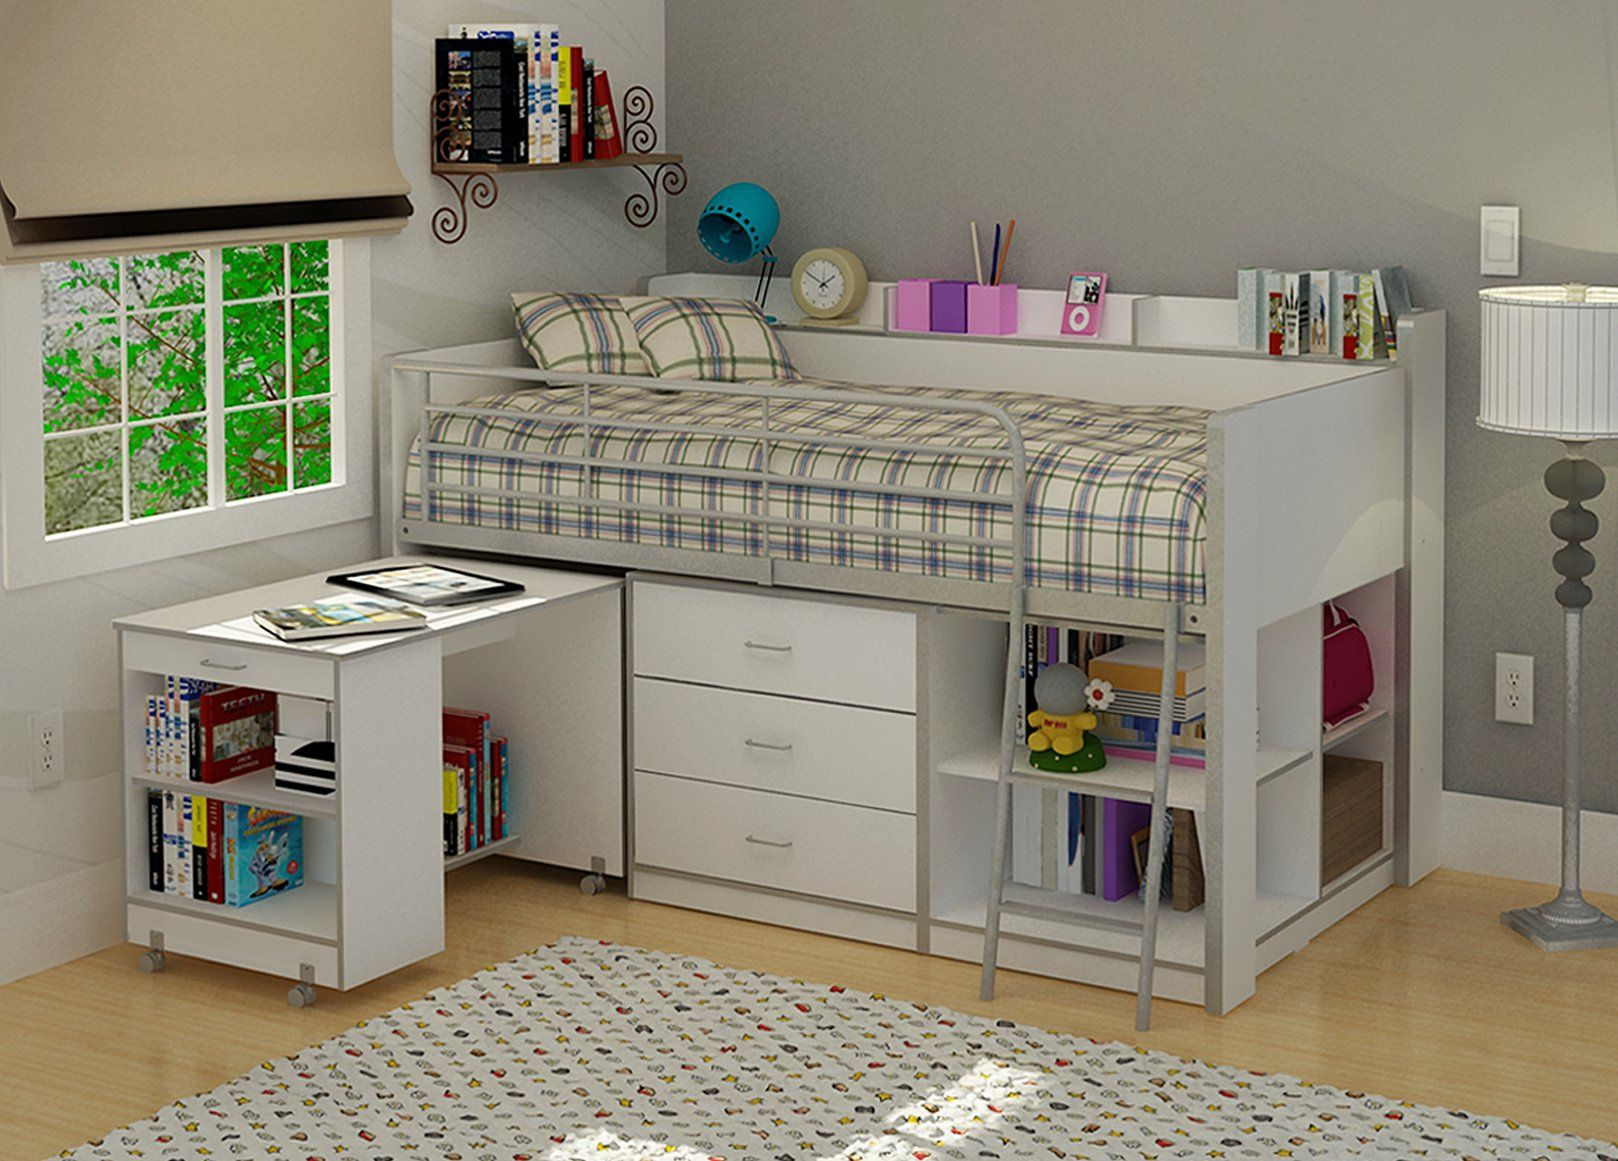 Loft bed with desk for small room  Amazon Rack Furniture Clairmont Loft bedWhite Home u Kitchen